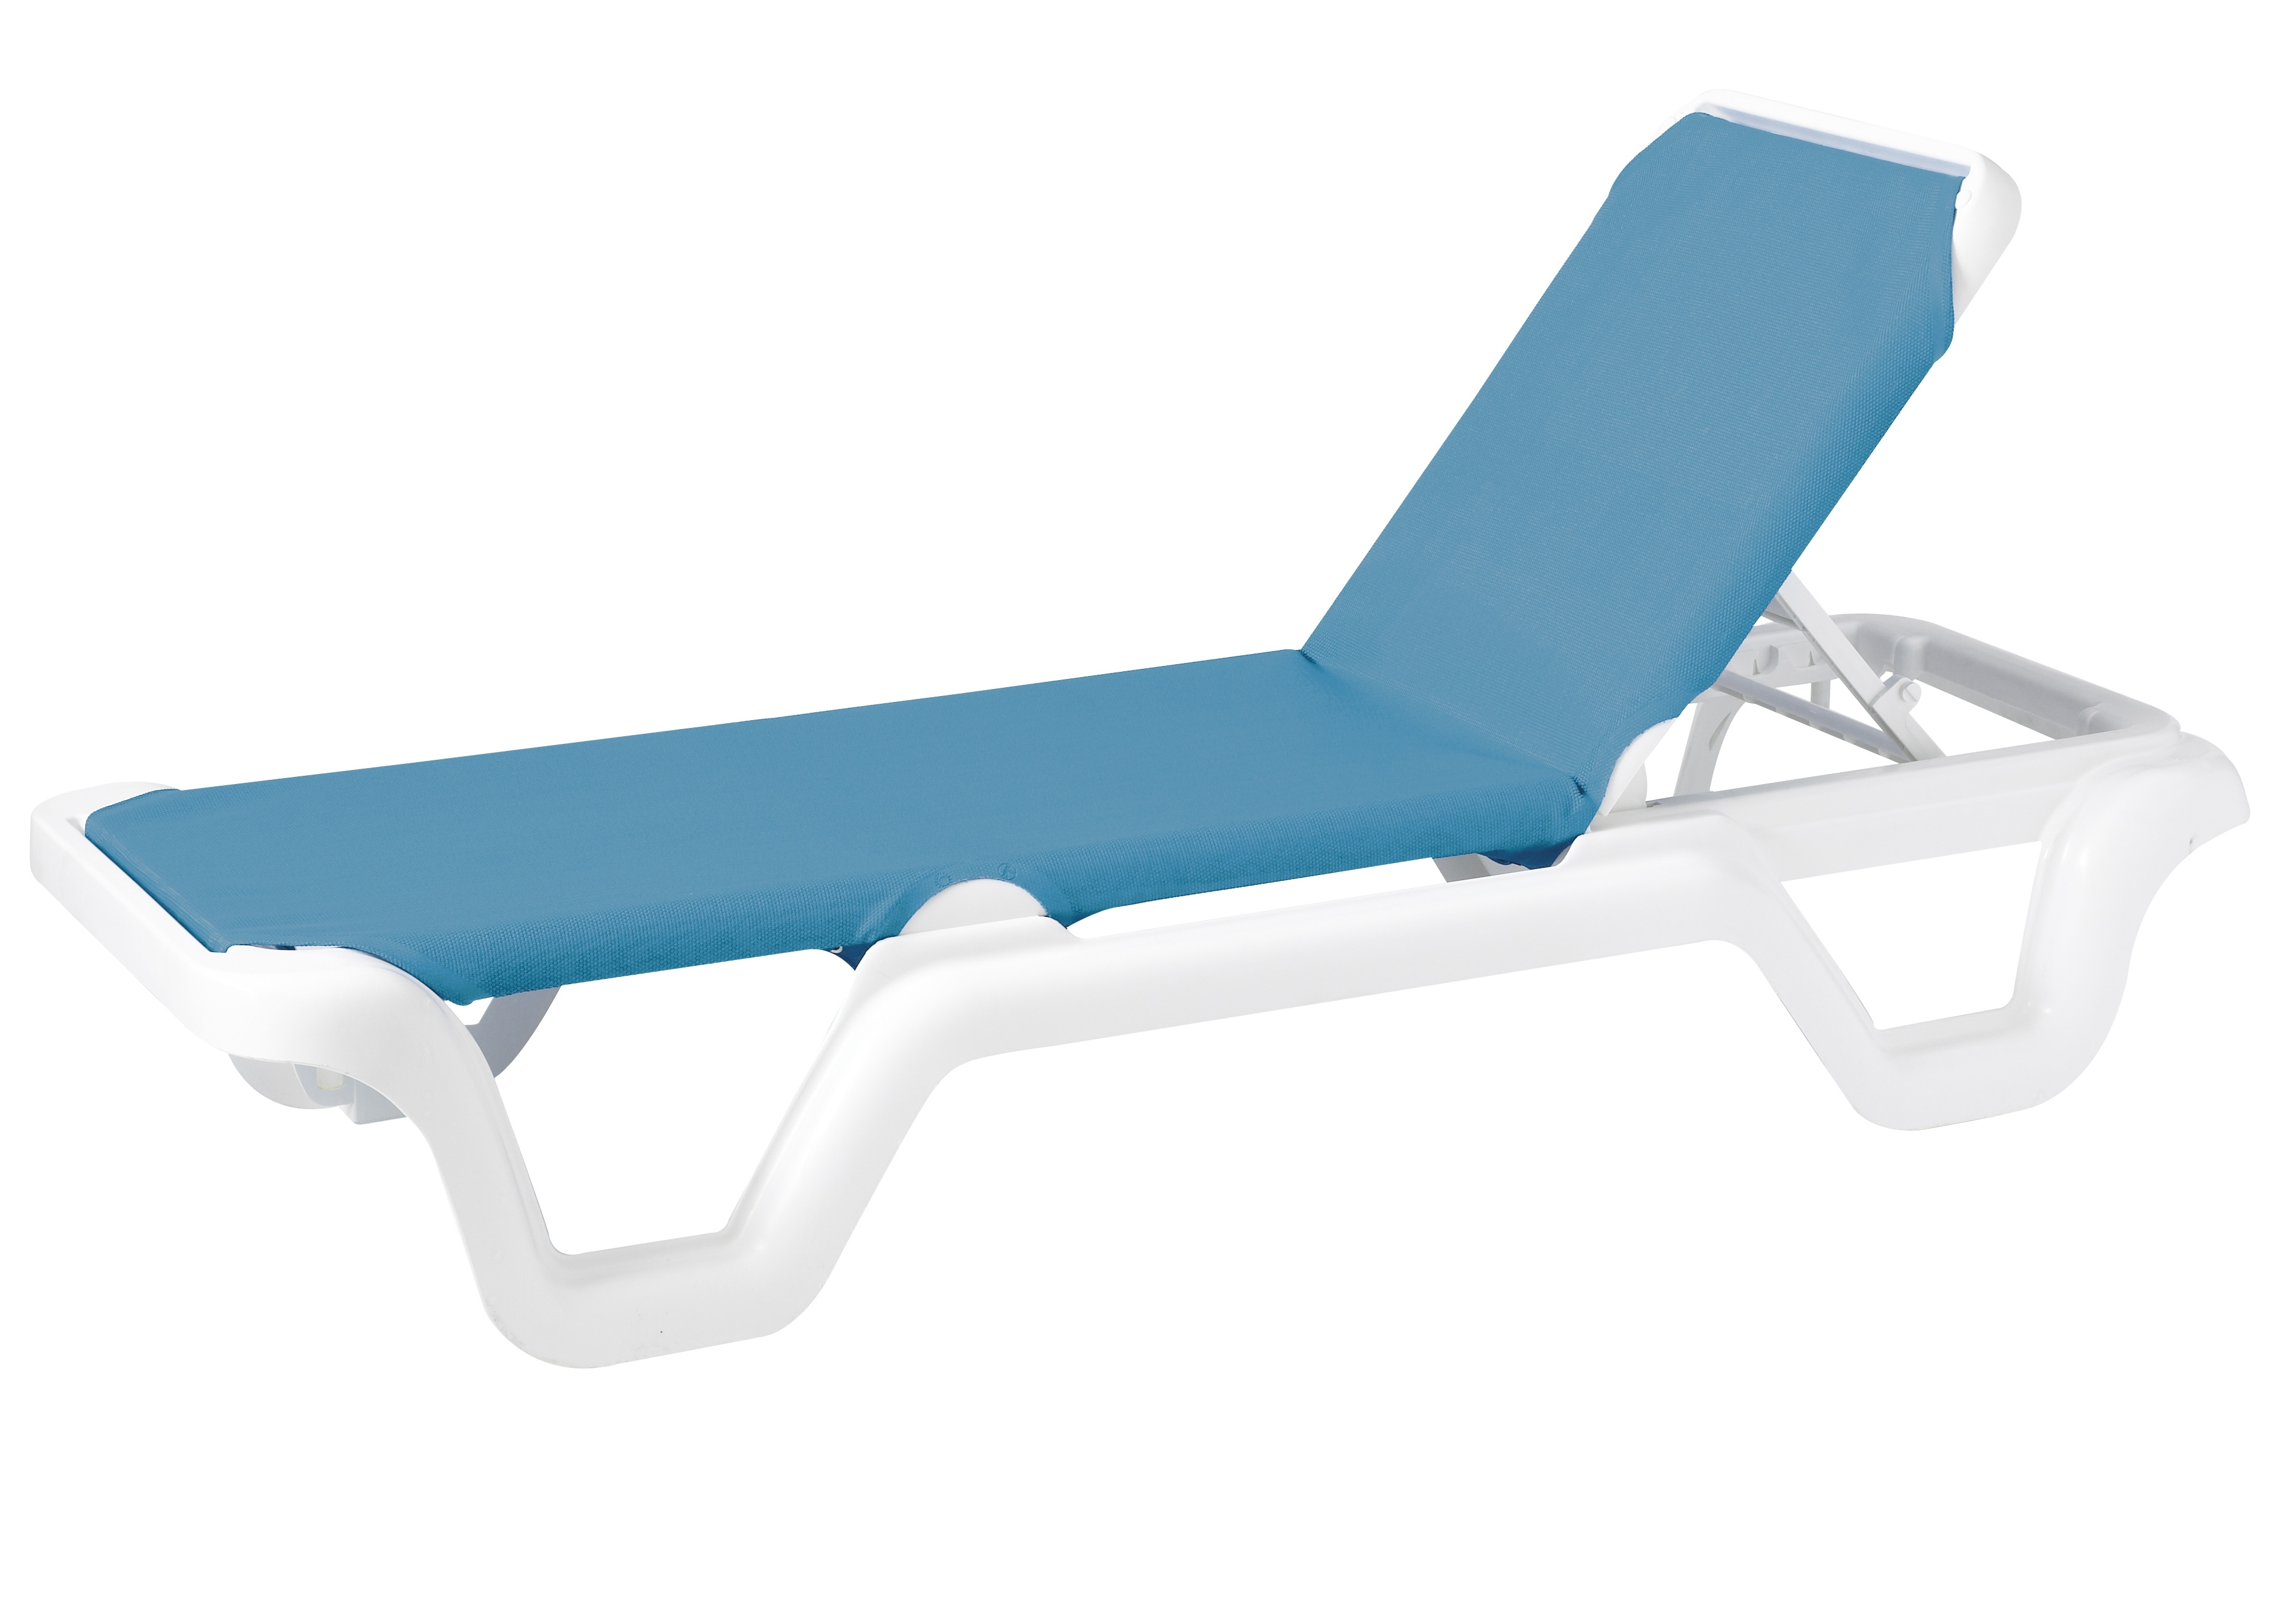 Newest Grosfillex Chaise Lounge Chairs In Grosfillex Marina Style Resin Sling Chaise Lounge Chair W/o Arms (View 11 of 15)